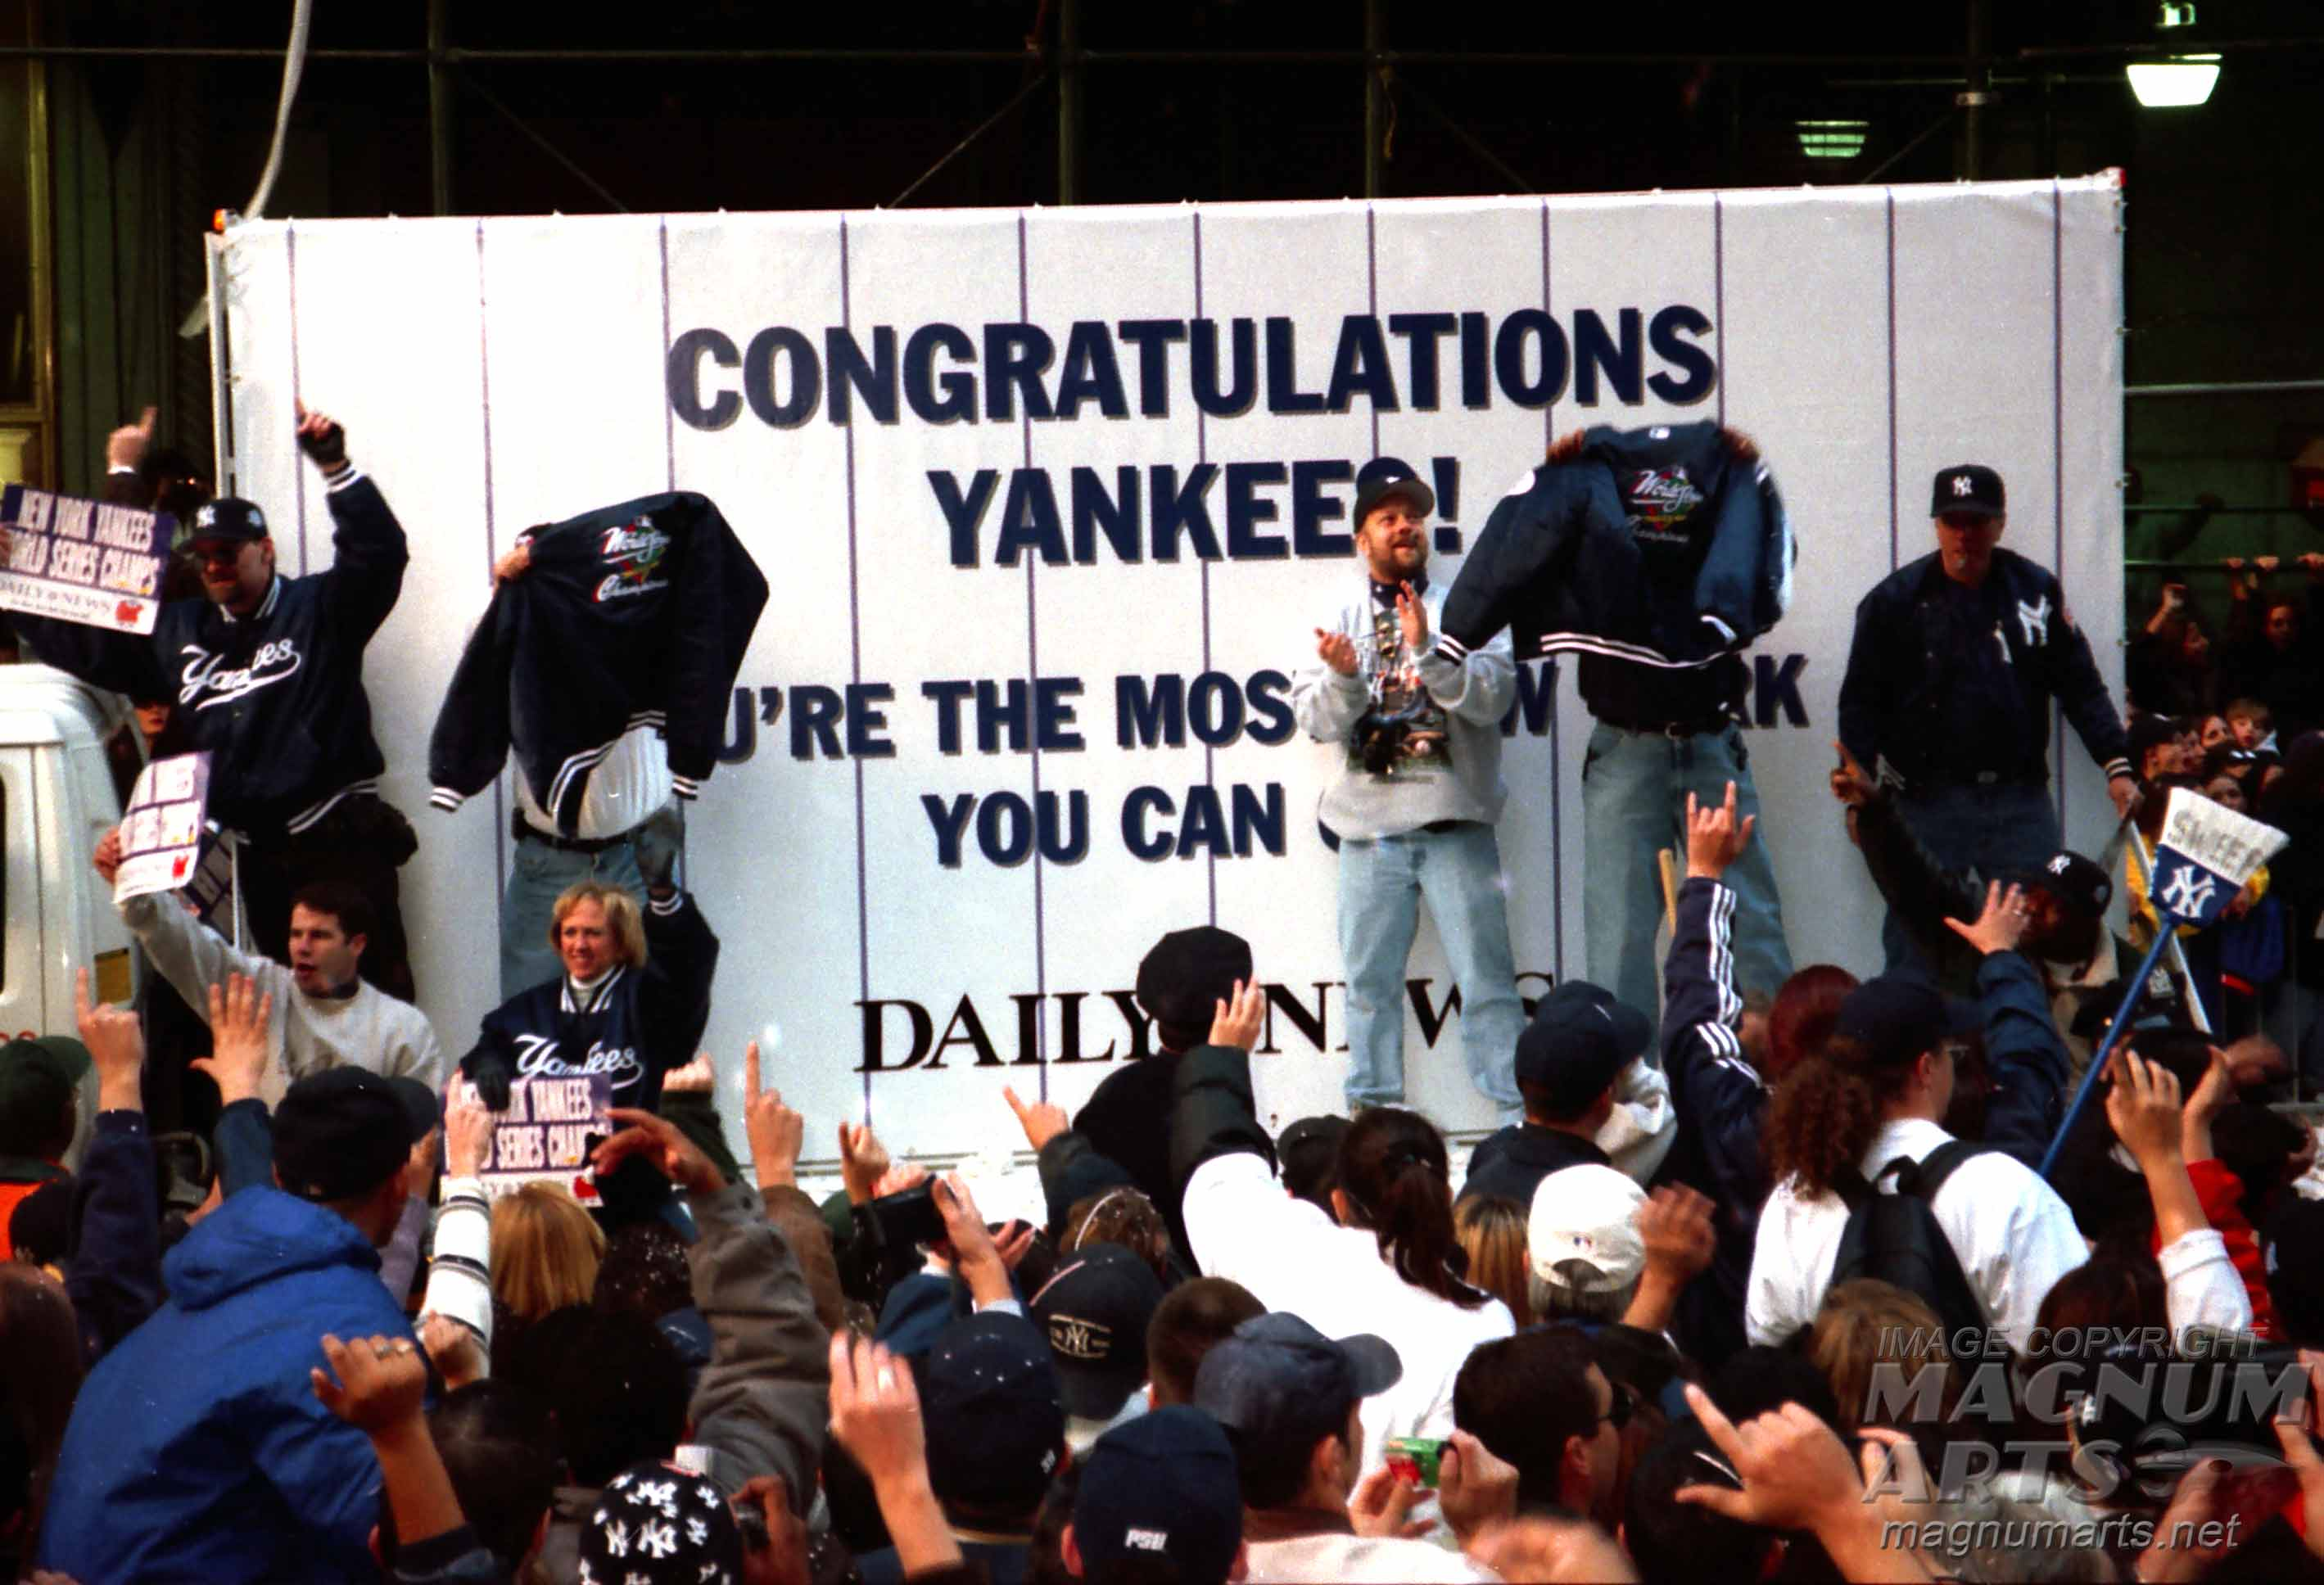 new york yankees essay Read this full essay on why the new york yankees are so successful the new  york yankees are without dispute the most successful franchise in baseball.